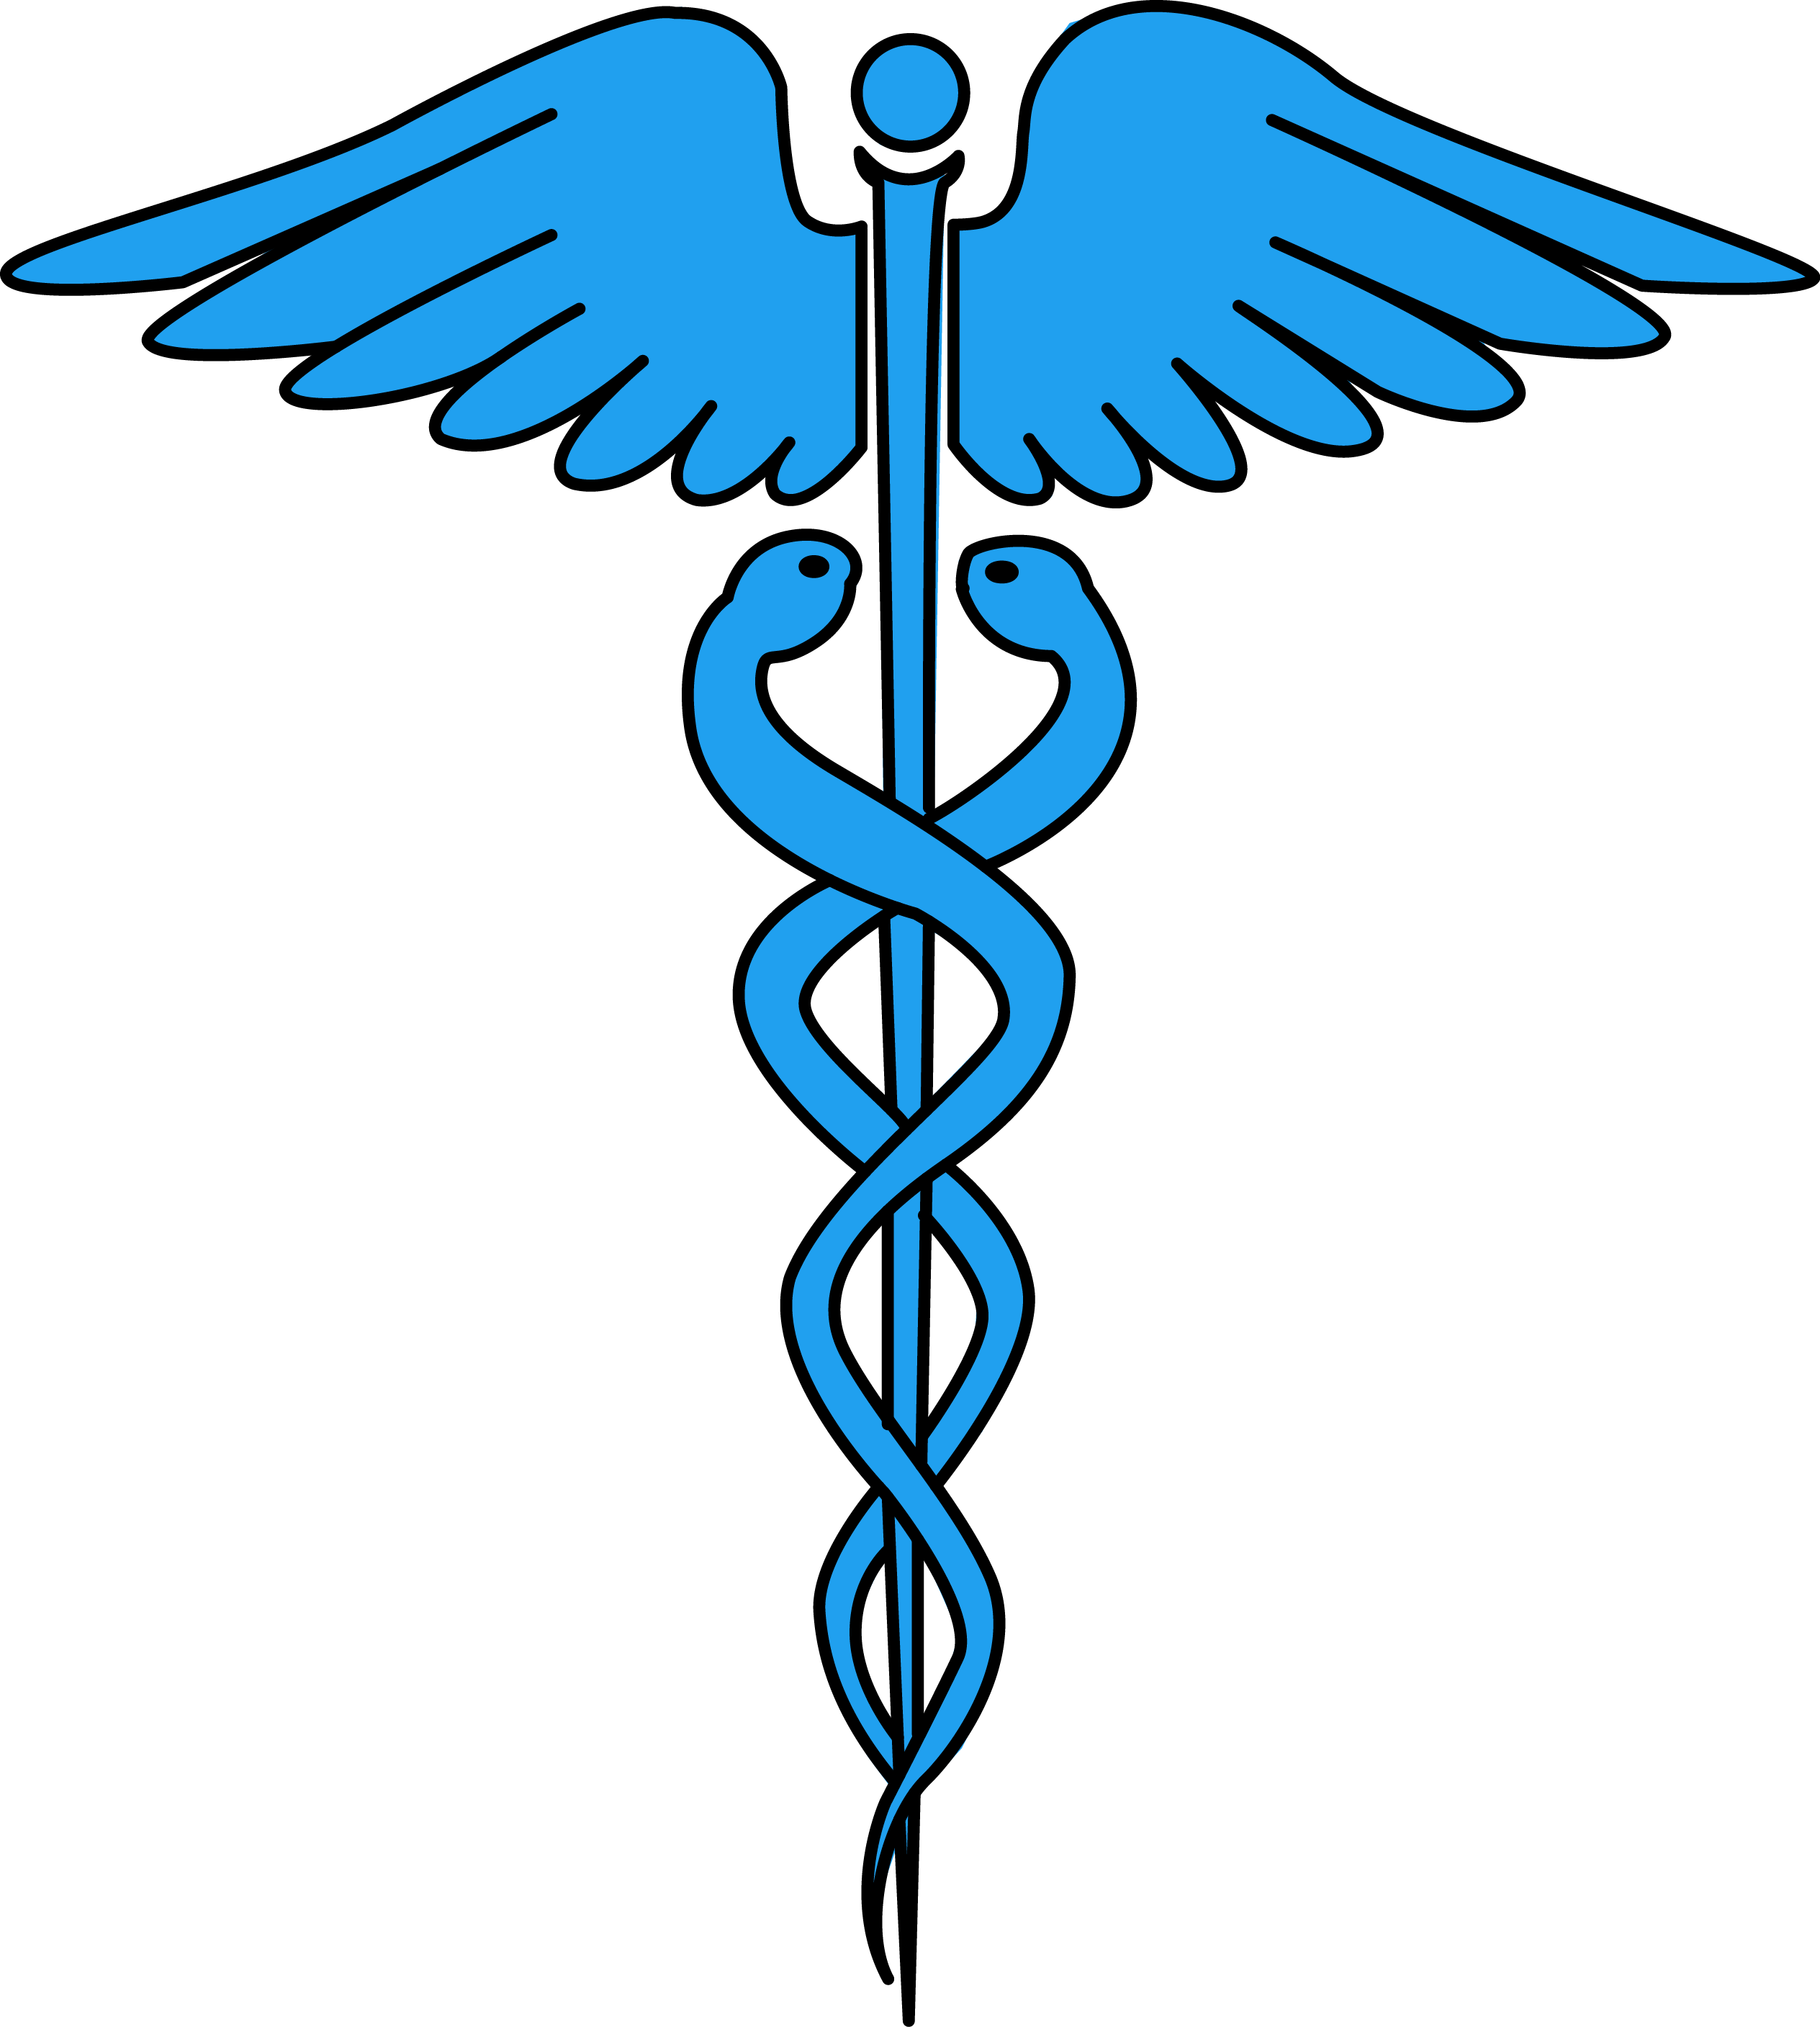 2528x2815 Image For Free Caduceus Medical Symbol Health High Resolution Clip